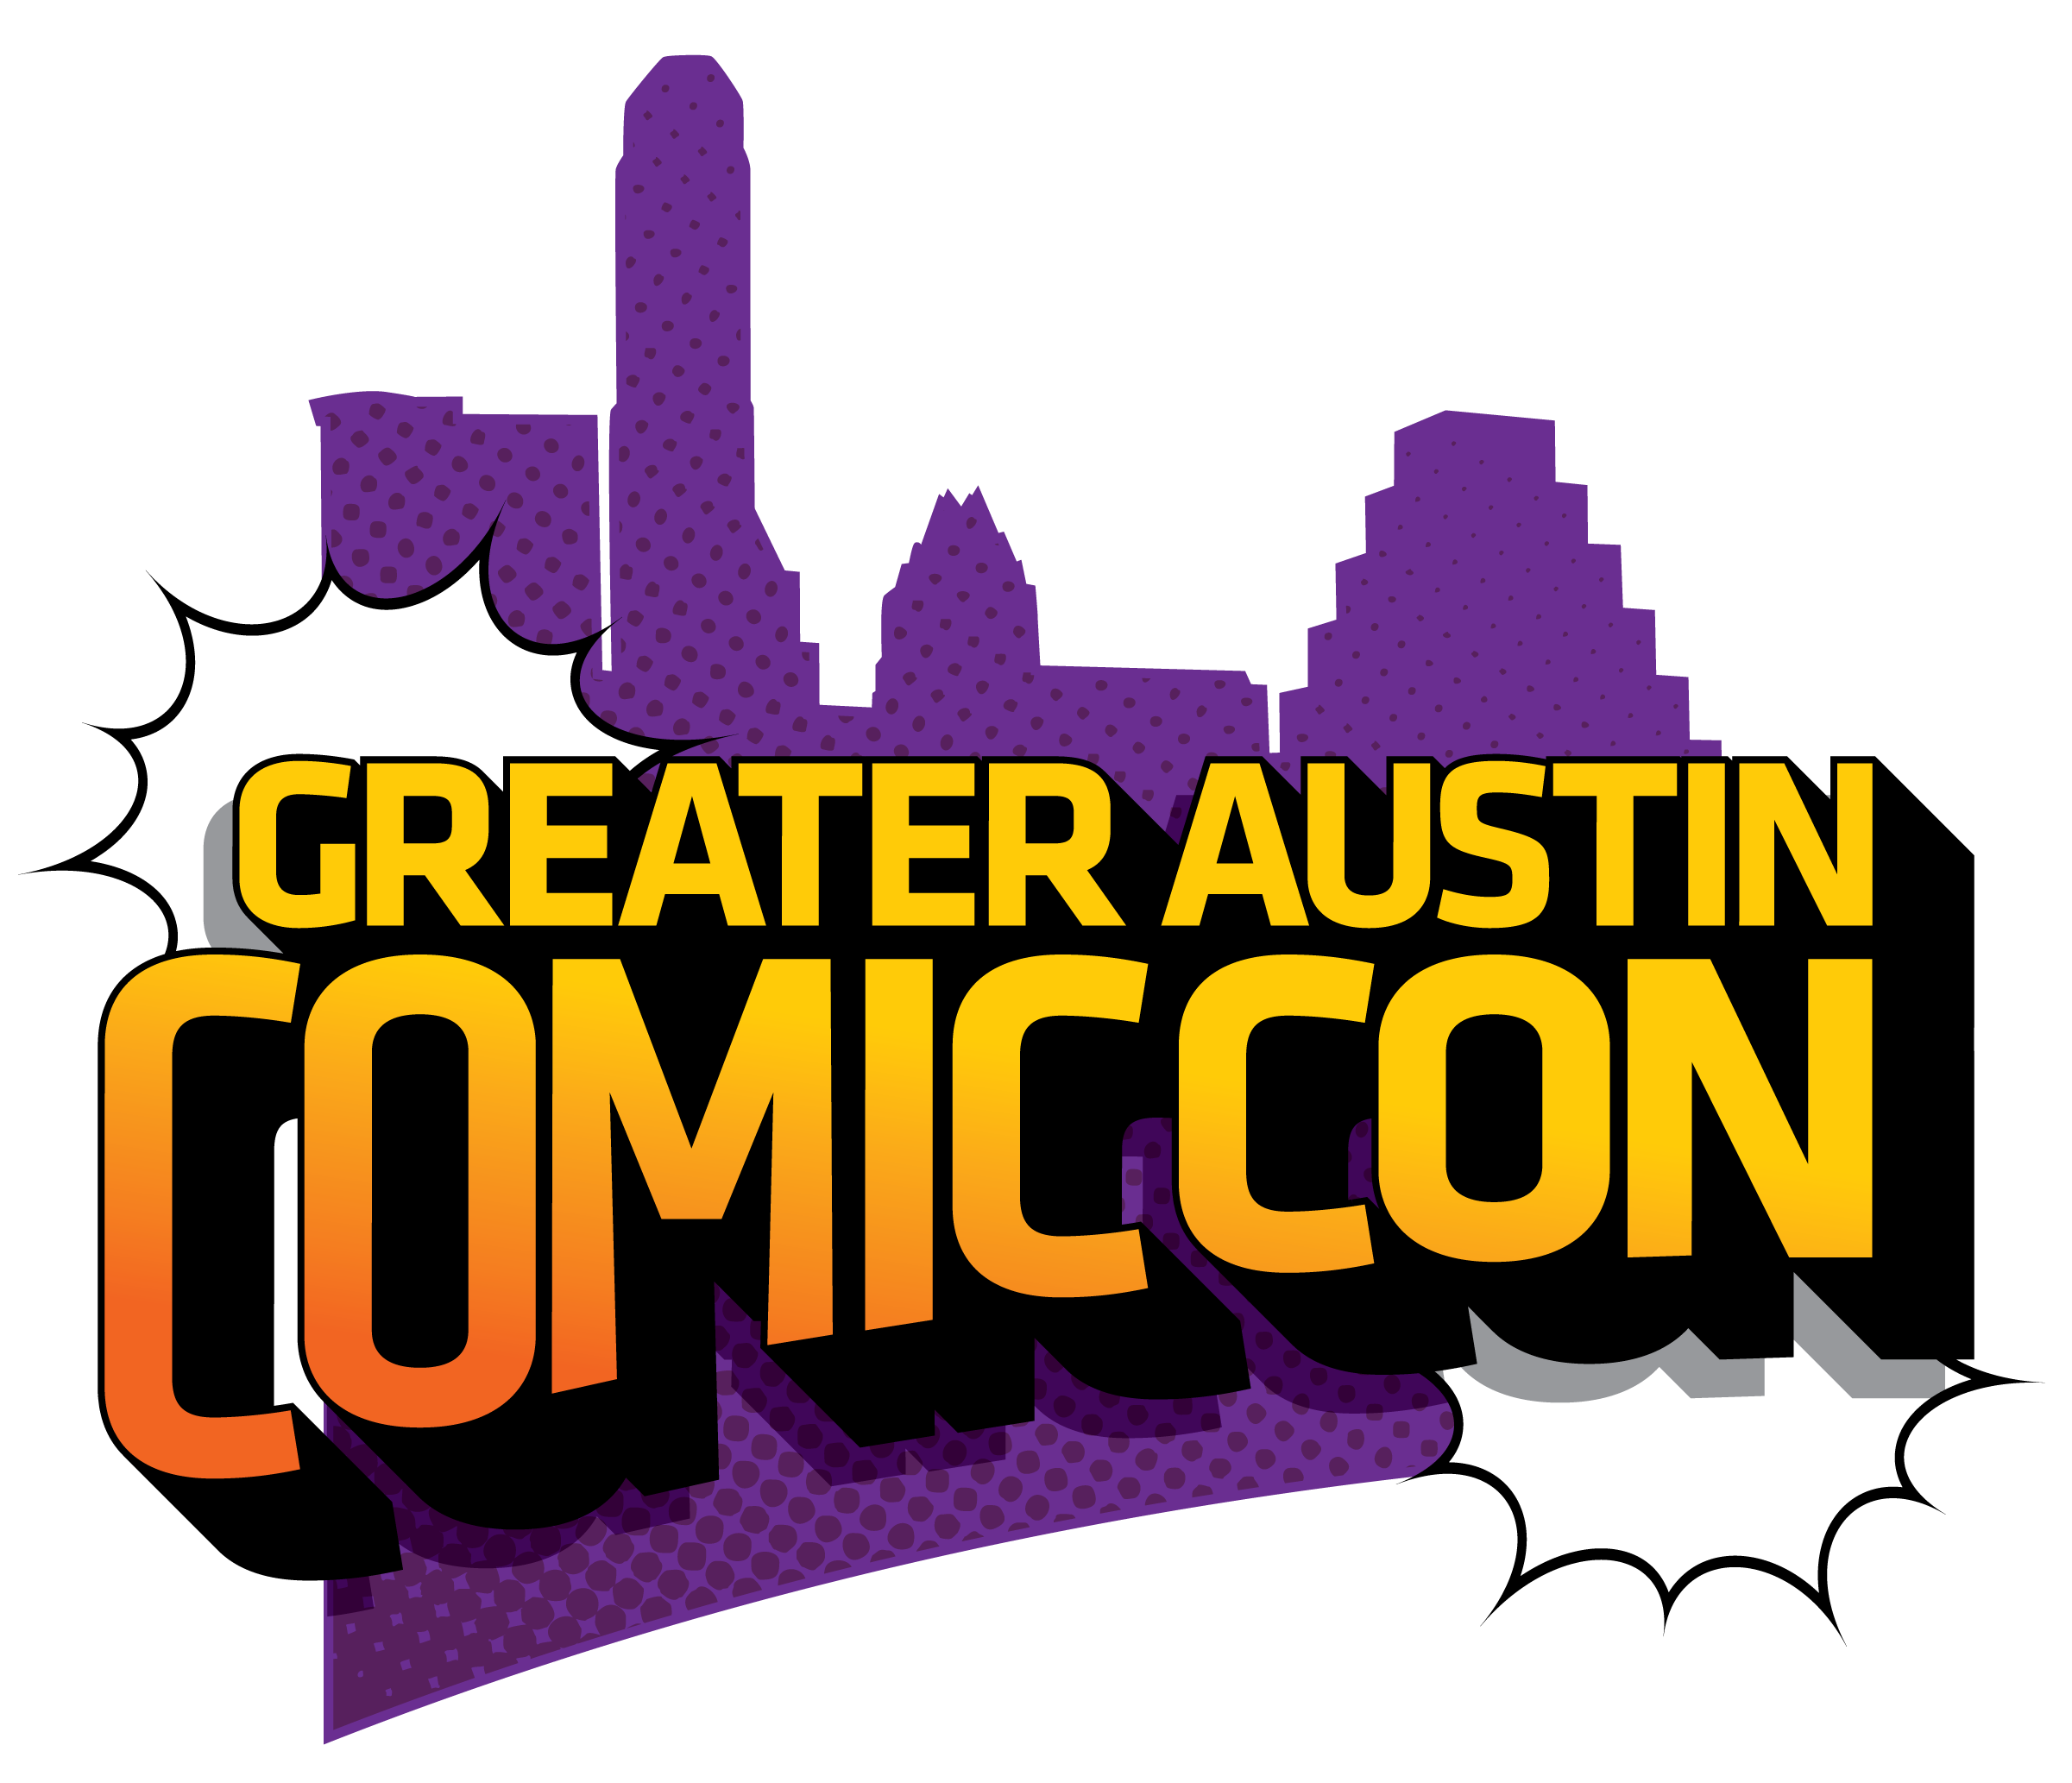 Greater Austin Comic Con Logo